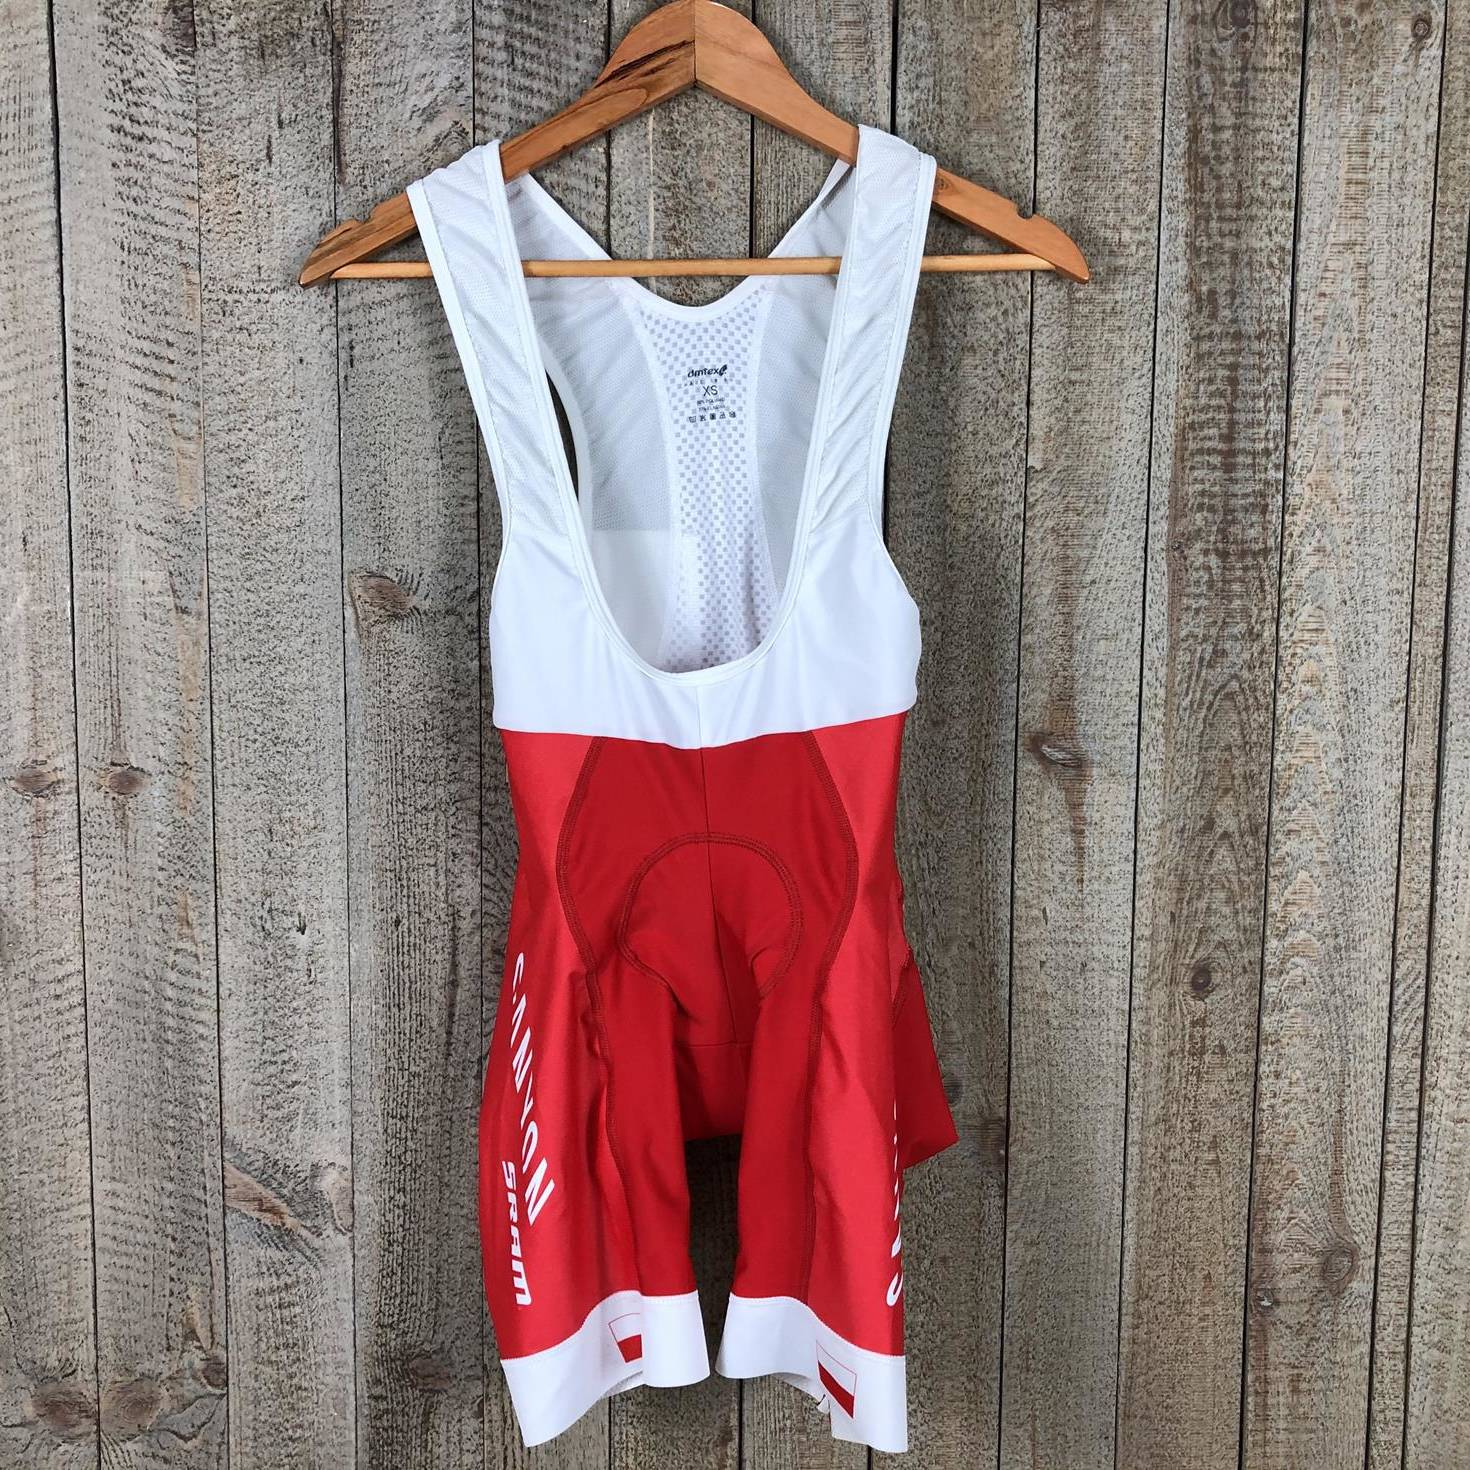 Bib Shorts - Polish National Team 00003136 (1)